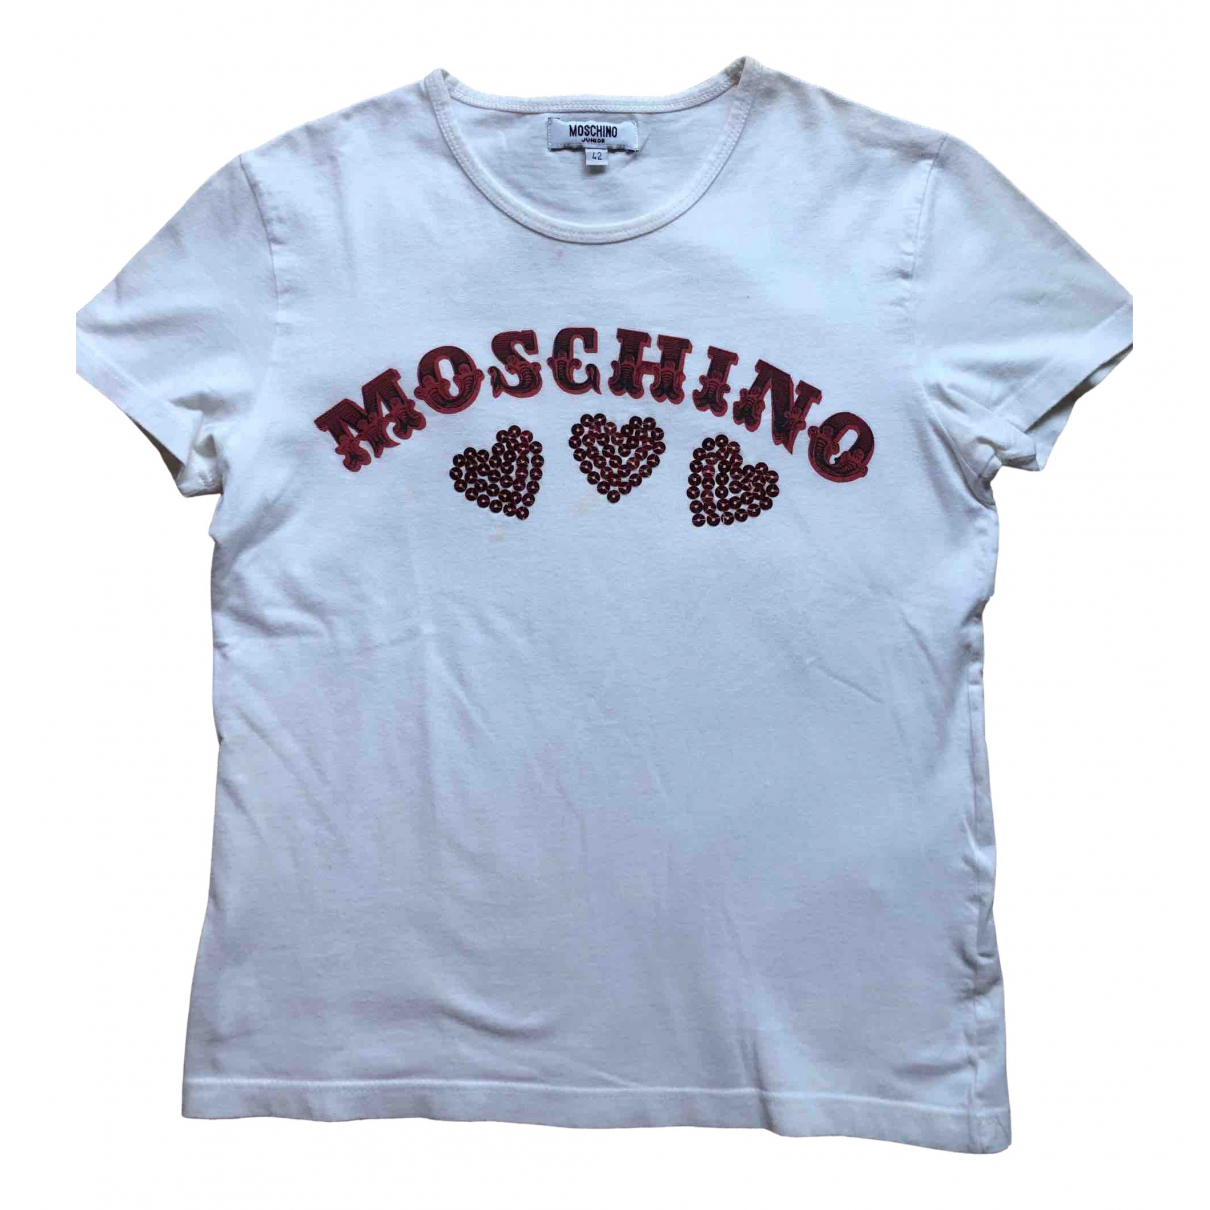 Moschino \N White Cotton  top for Women 38 IT